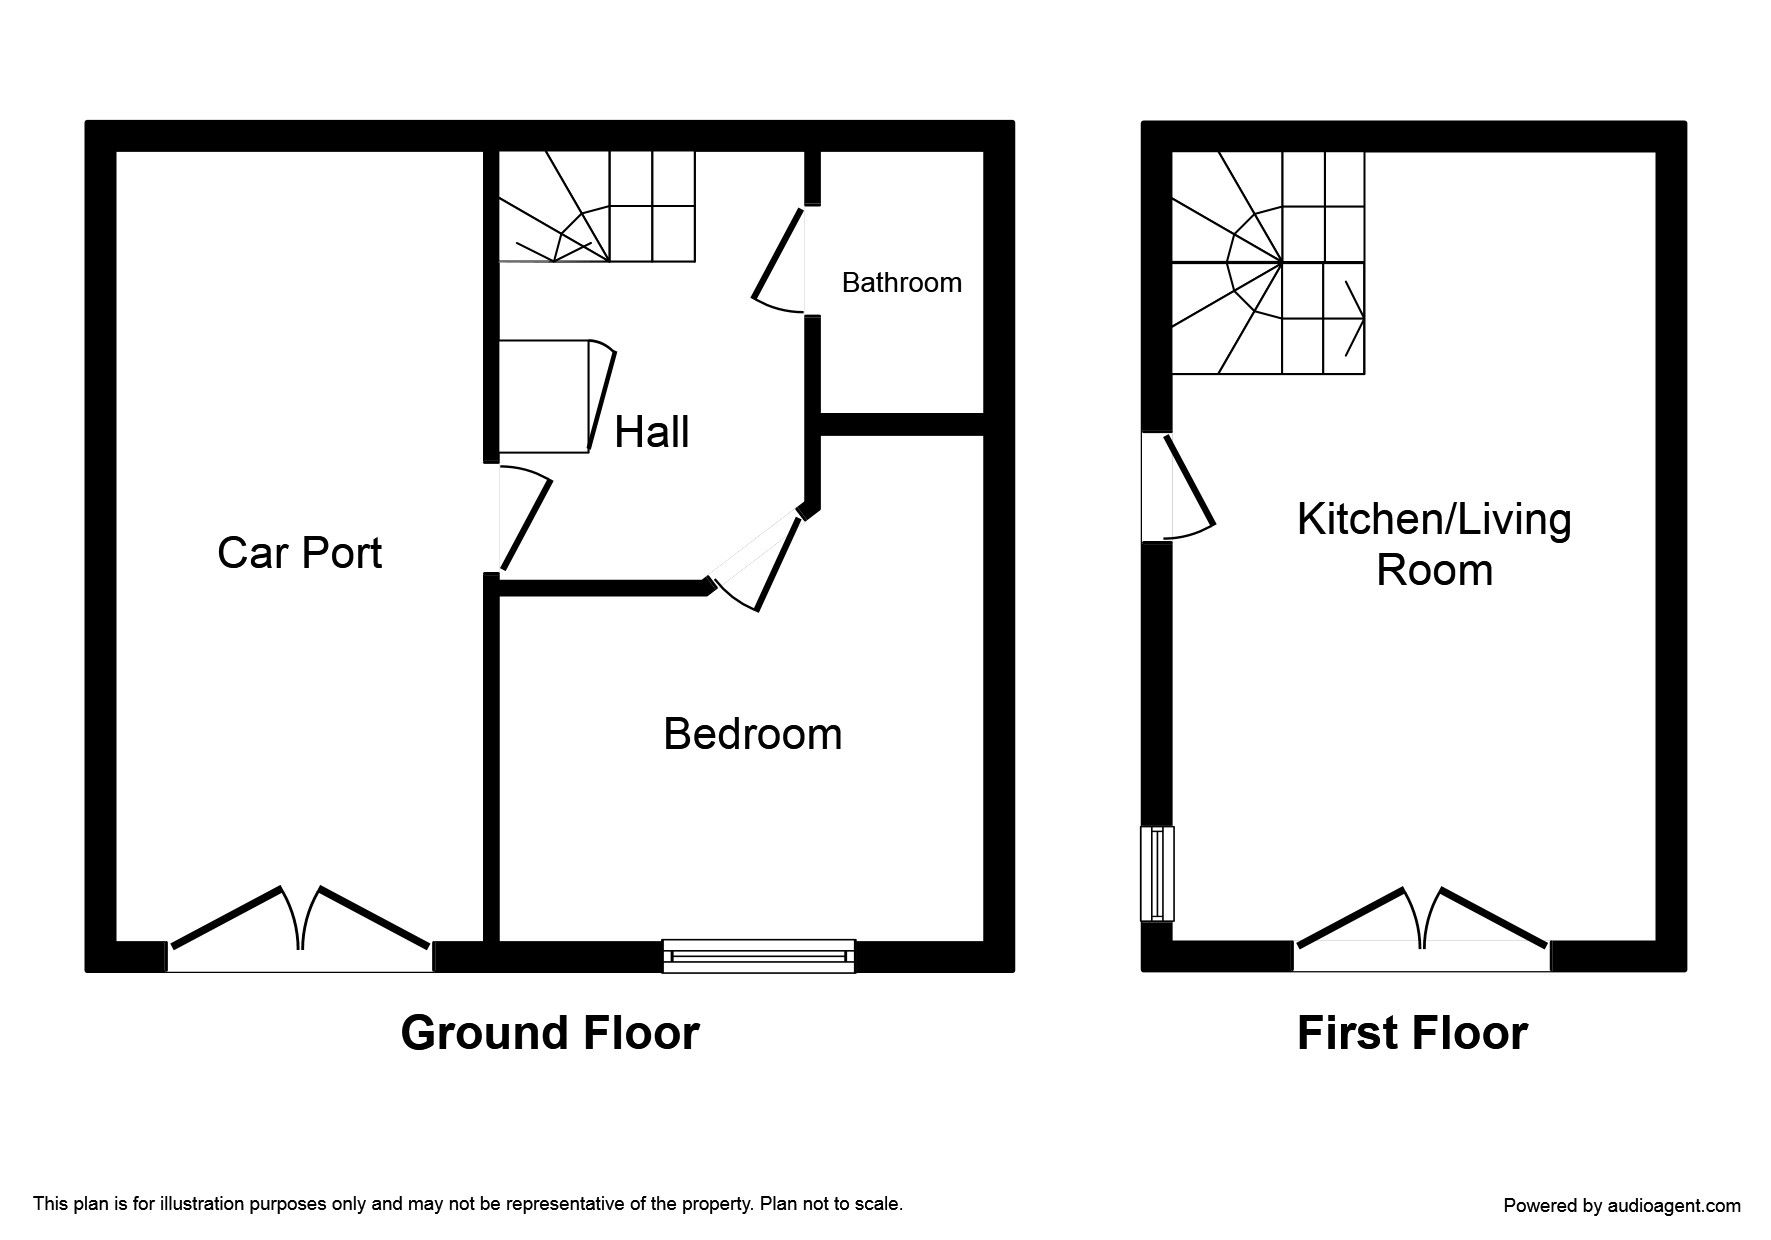 2 together with Shoppell likewise 3 additionally 2859082 in addition House Parts. on pictures of hall stairs and landing